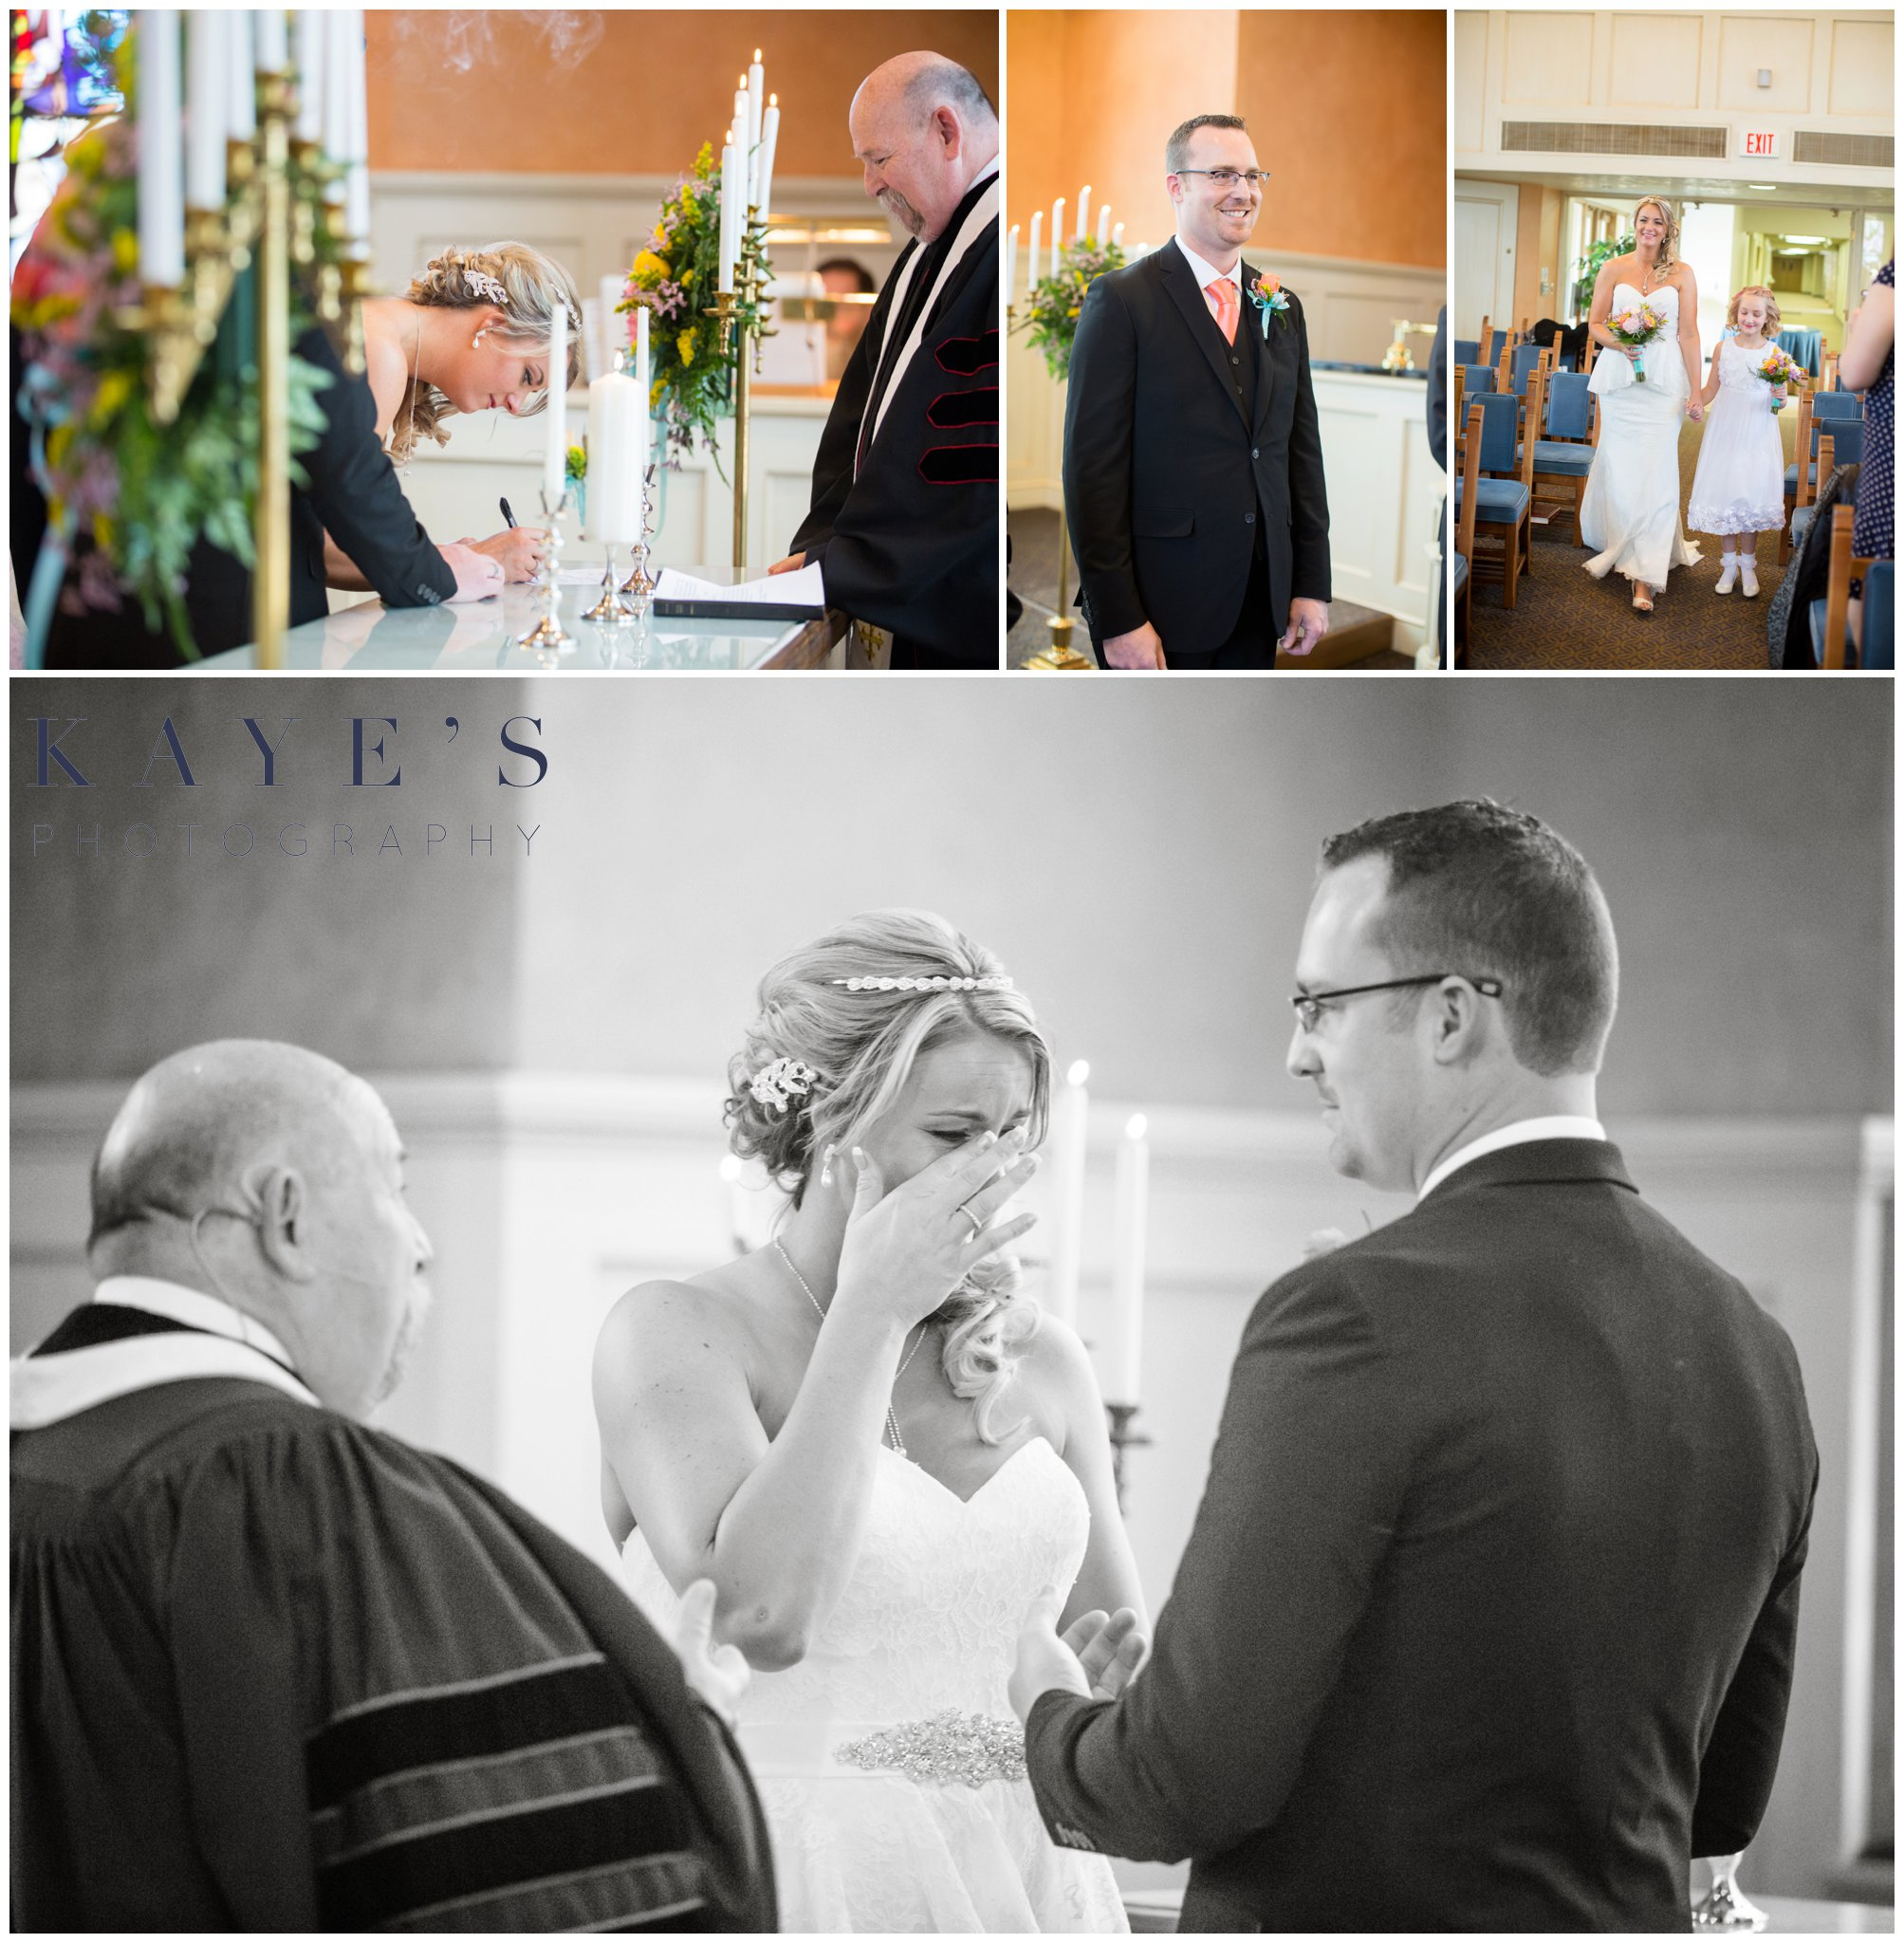 grand blanc wedding portraits, grand blanc wedding photos, grand blanc wedding photo, signing marriage license, bride crying, groom waiting for bride, bride walking down isle, saying vows